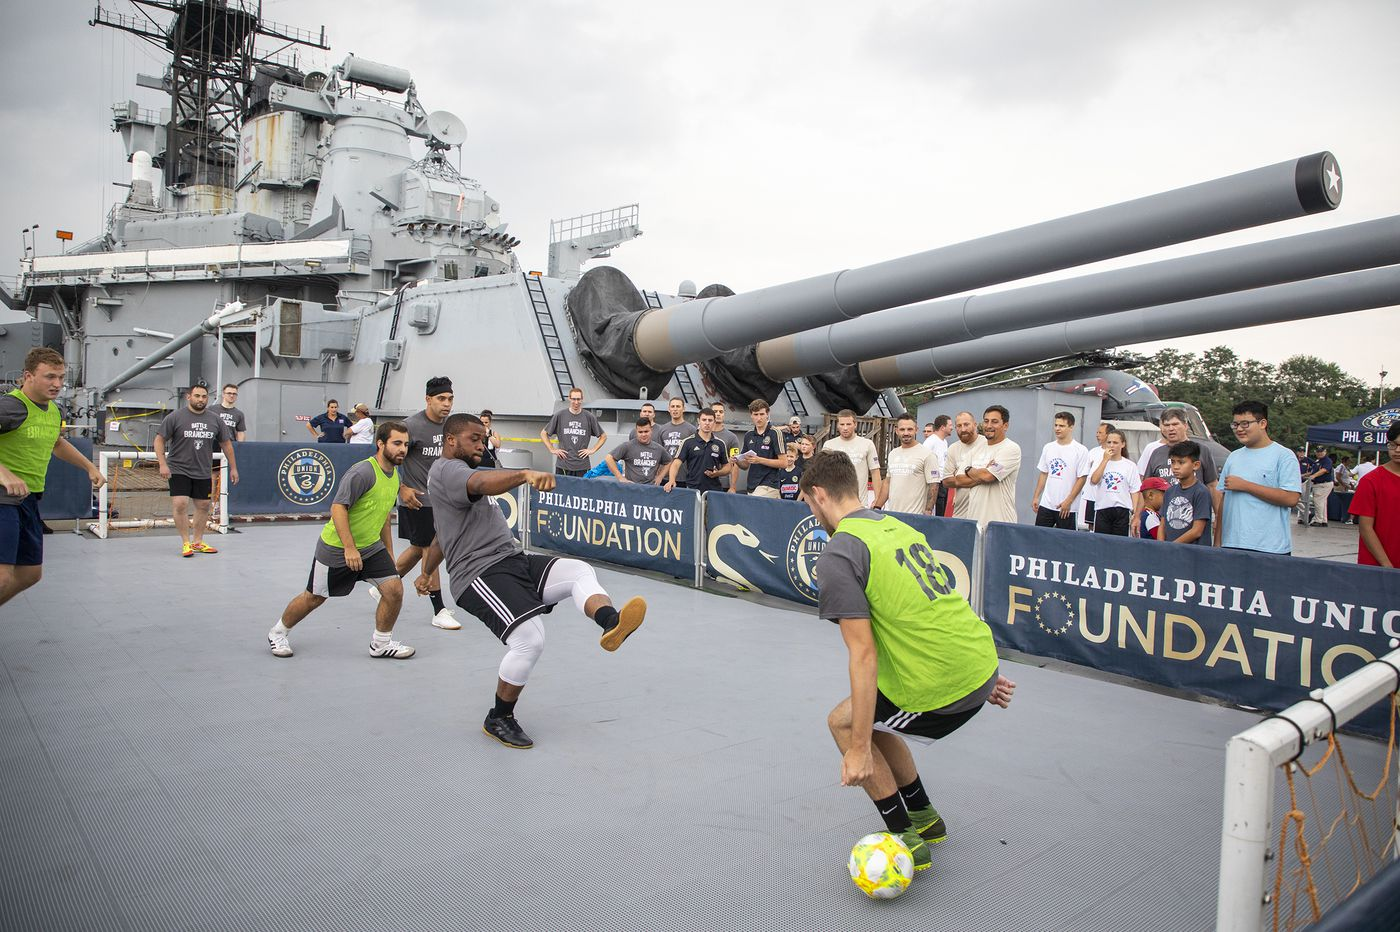 Military members square off in 'Battle of the Branches' soccer tournament on Battleship New Jersey